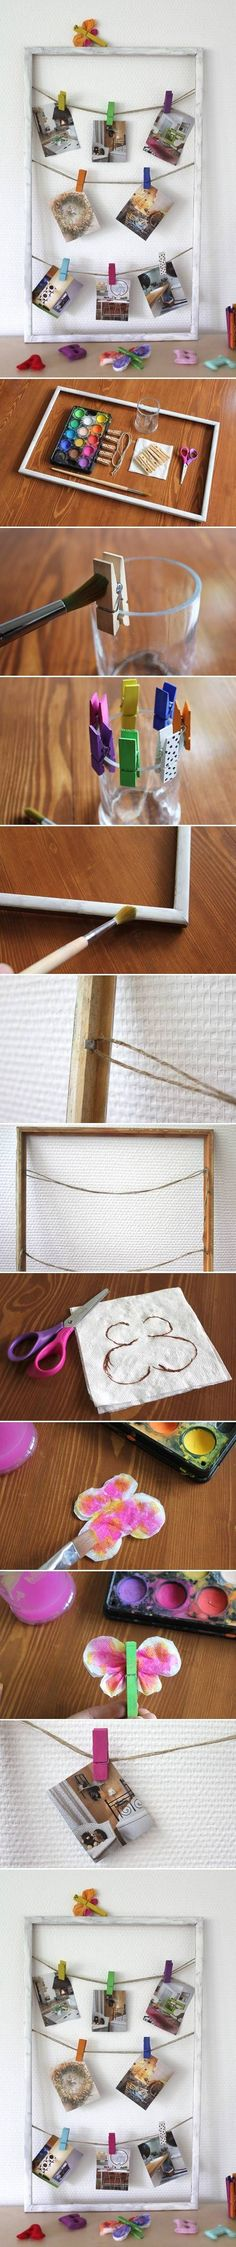 DIY Creative Hanging Picture Frame DIY Projects / UsefulDIY.com